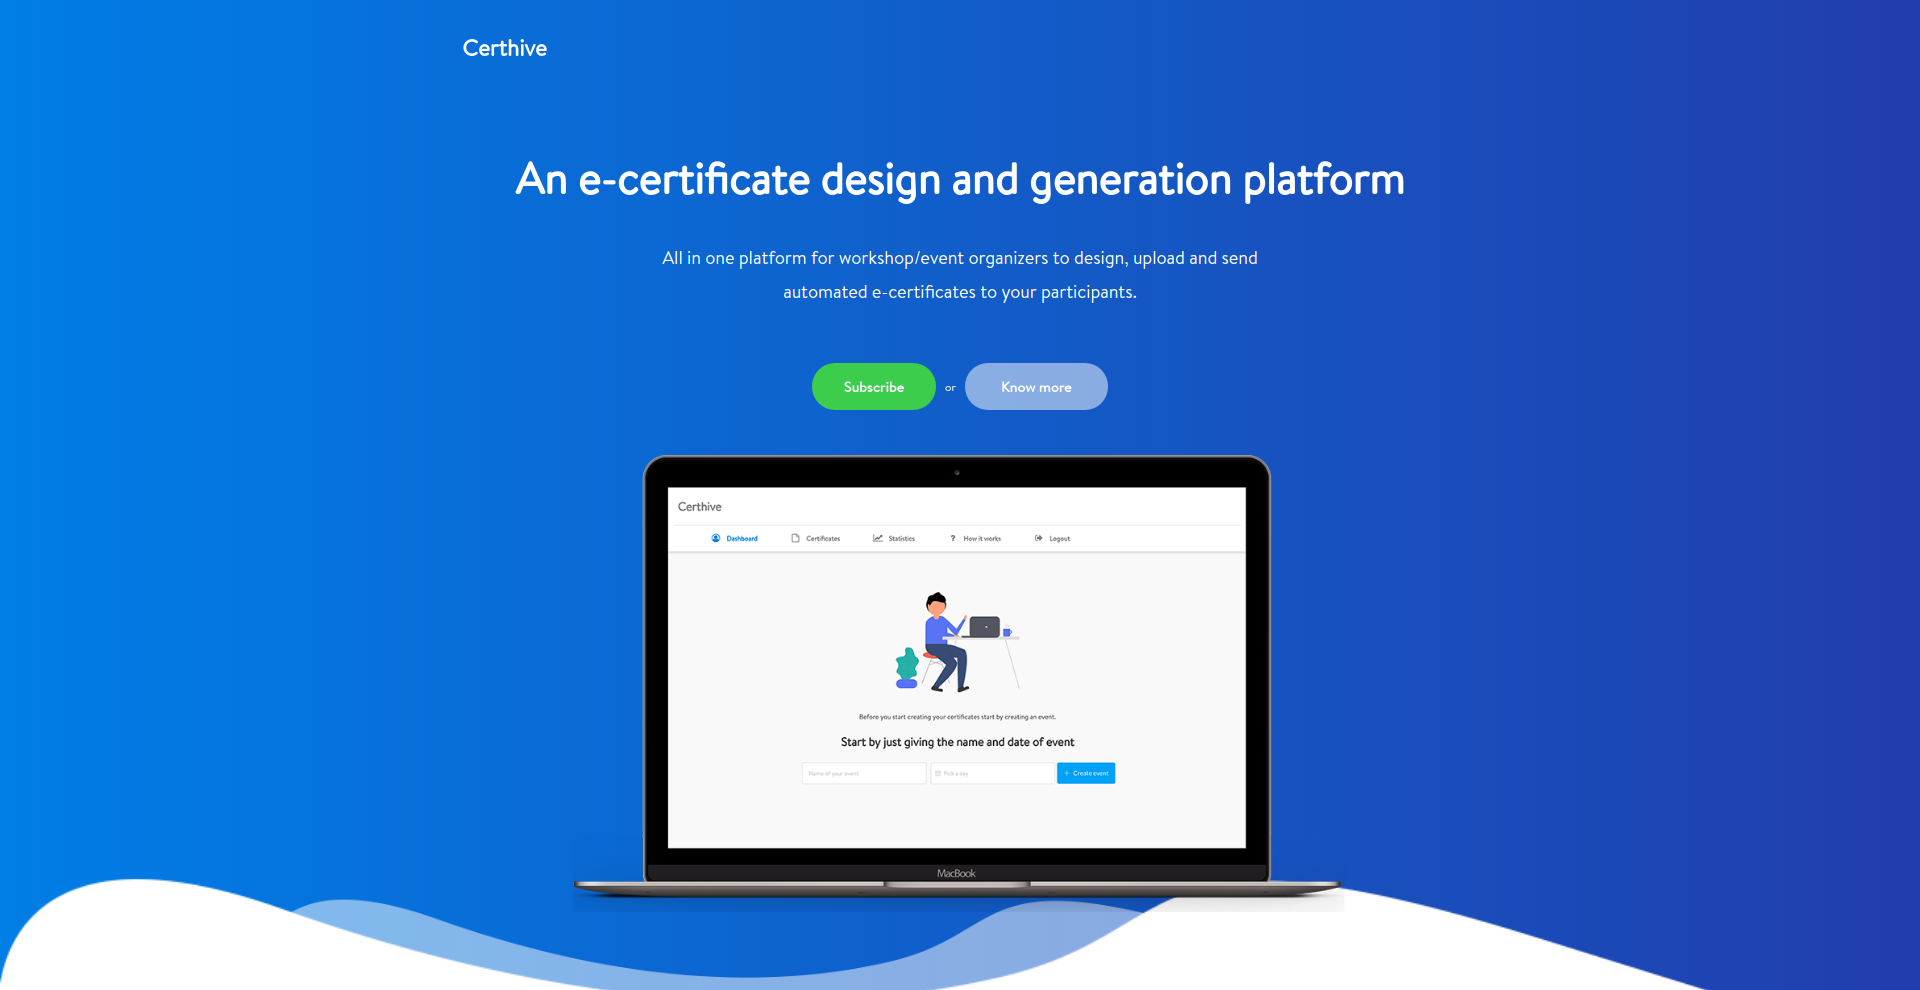 Certhive current landing page